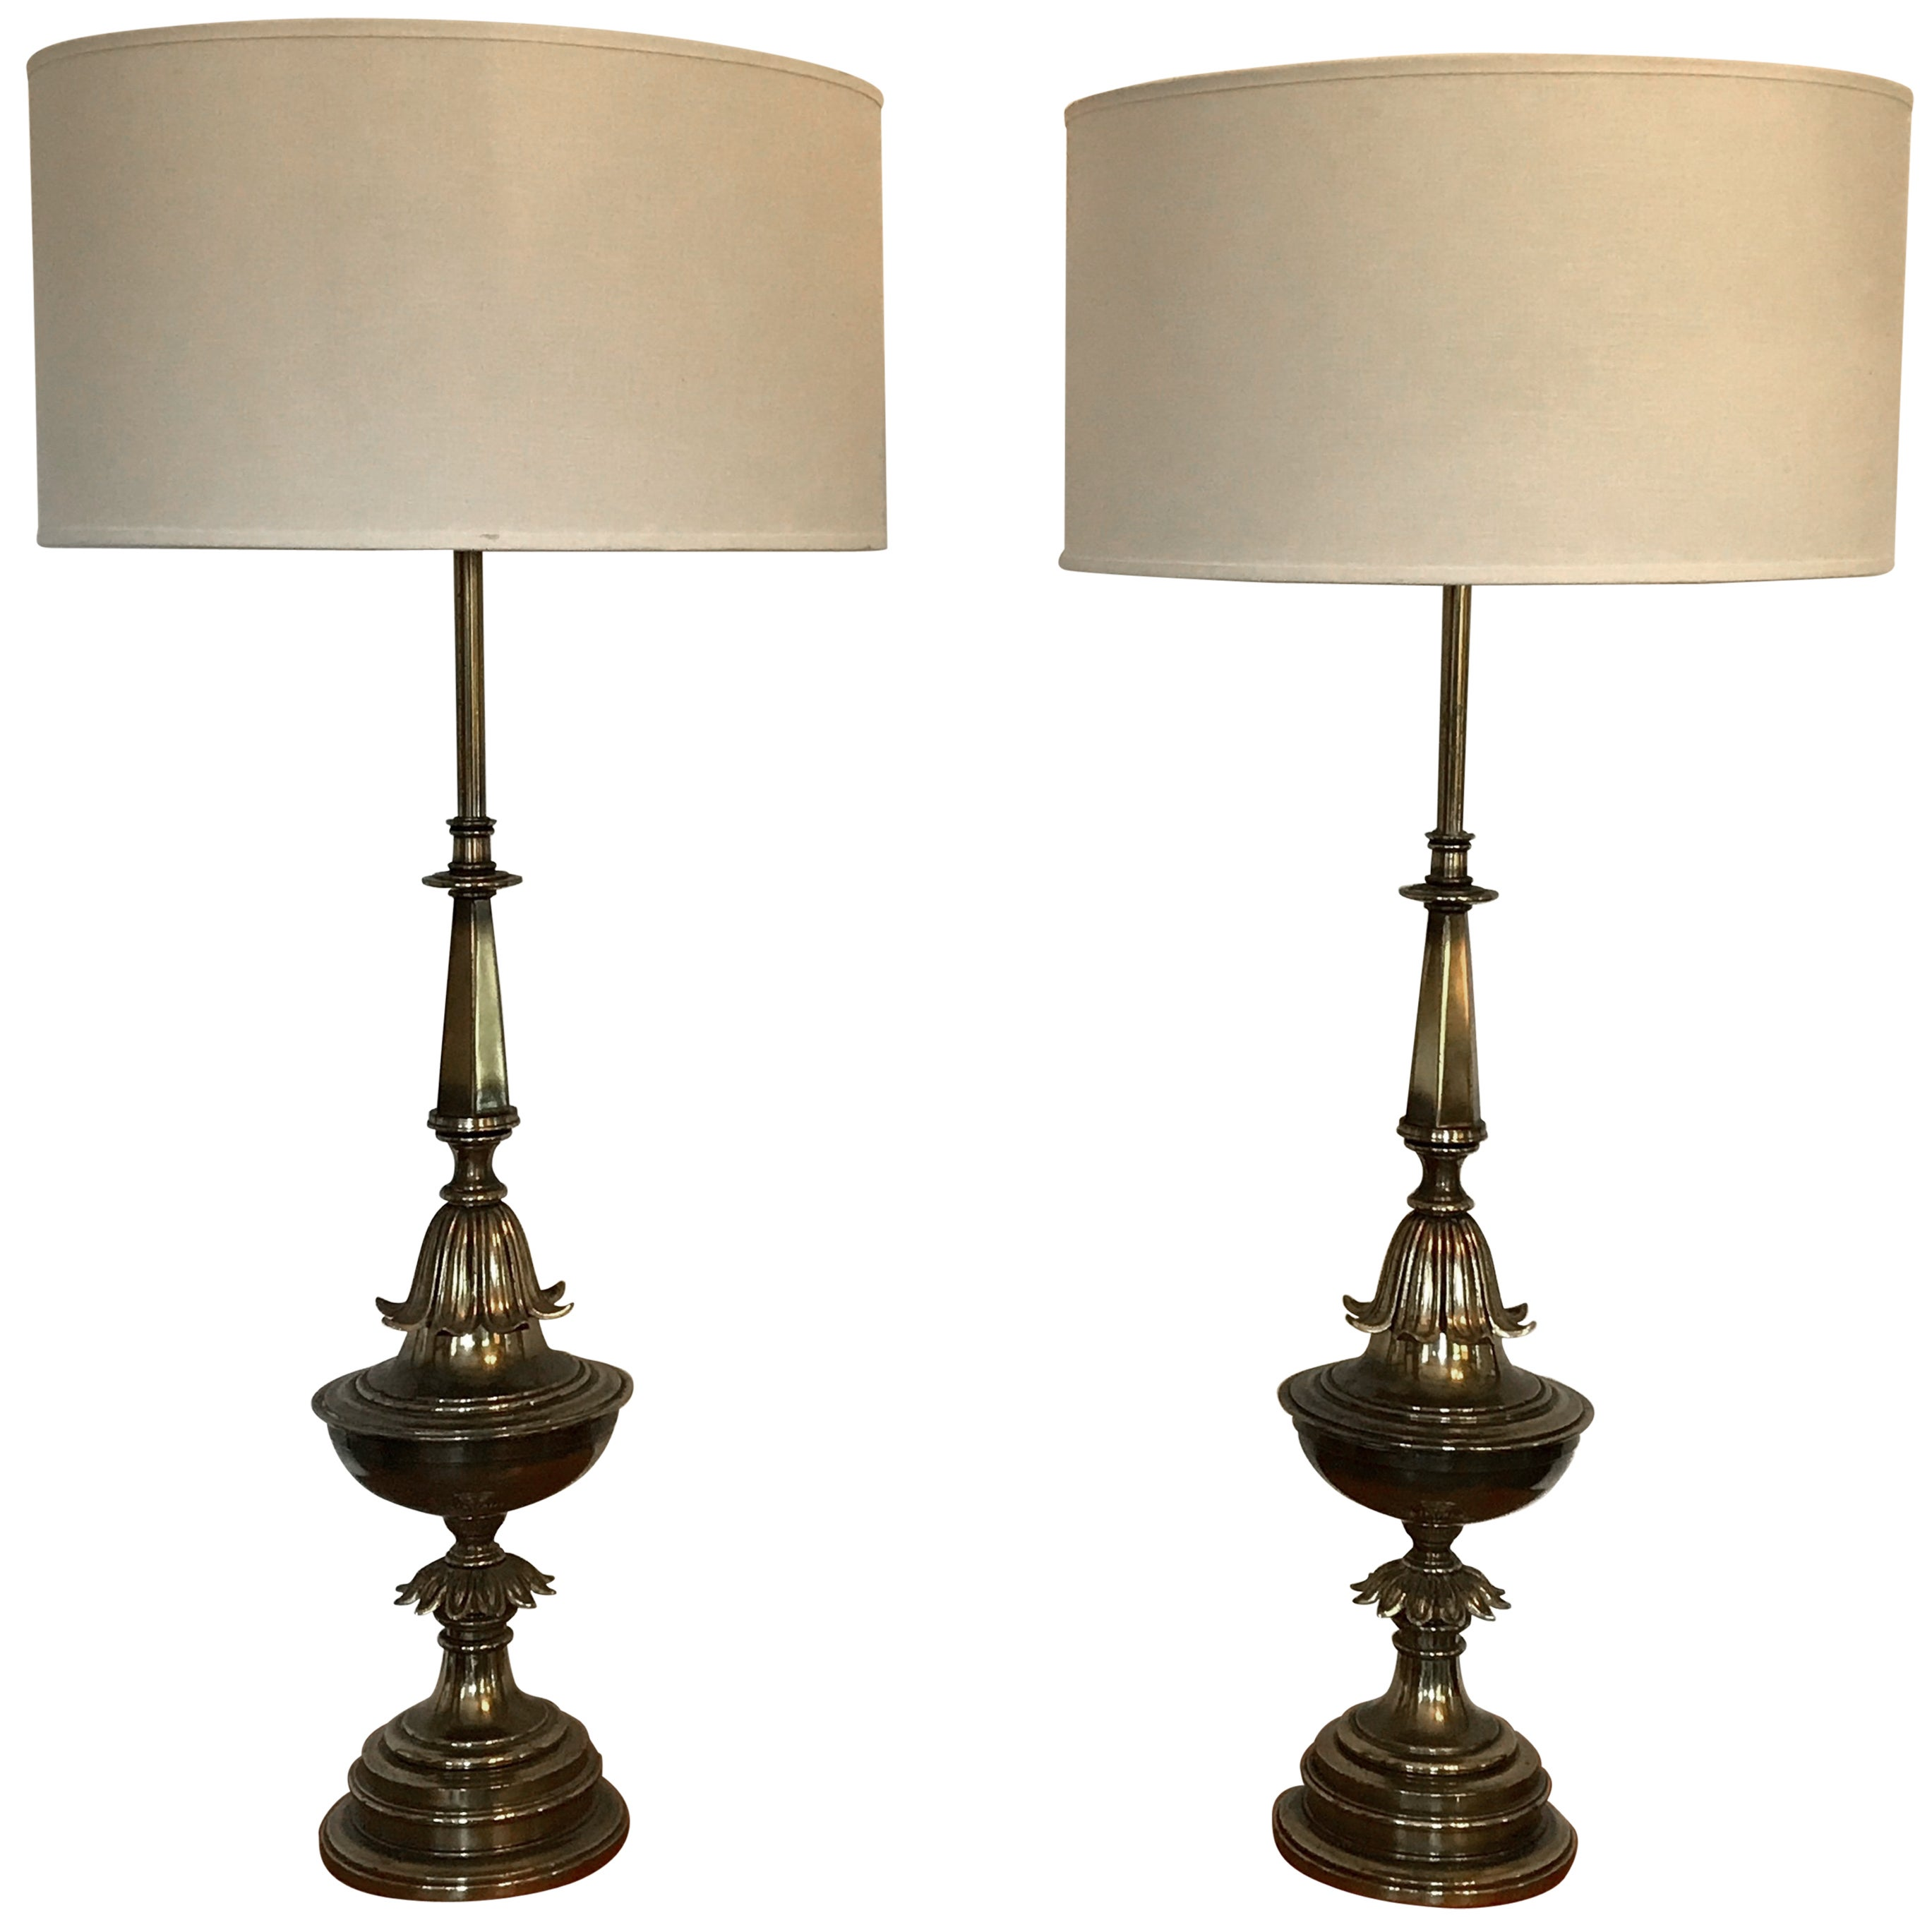 Pair of Hollywood Regency Style Brass Table Lamps, Large Scale, 1940's